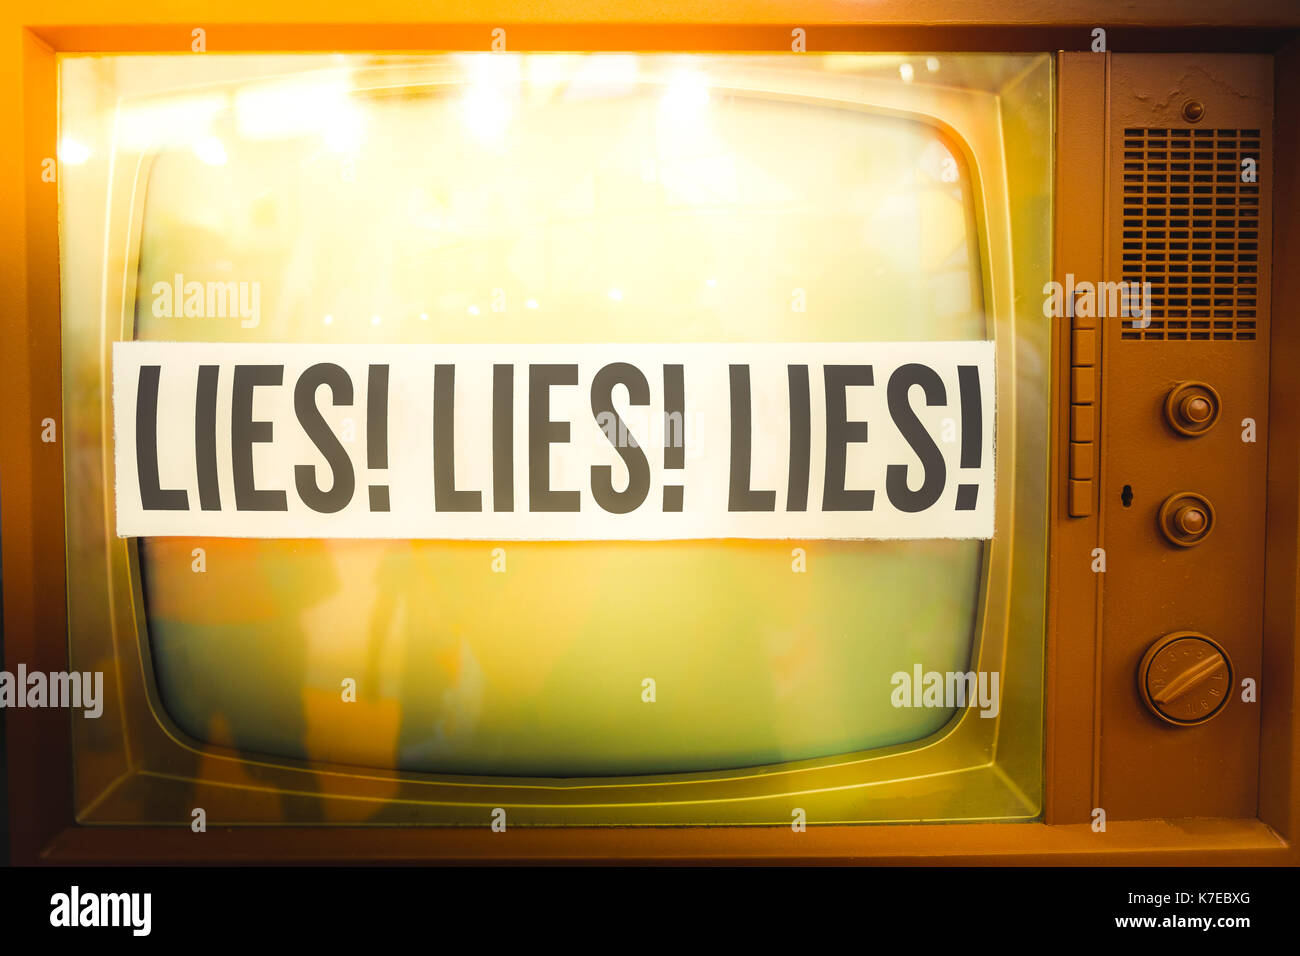 lies of mainstream media propaganda disinformation old tv label vintage - Stock Image